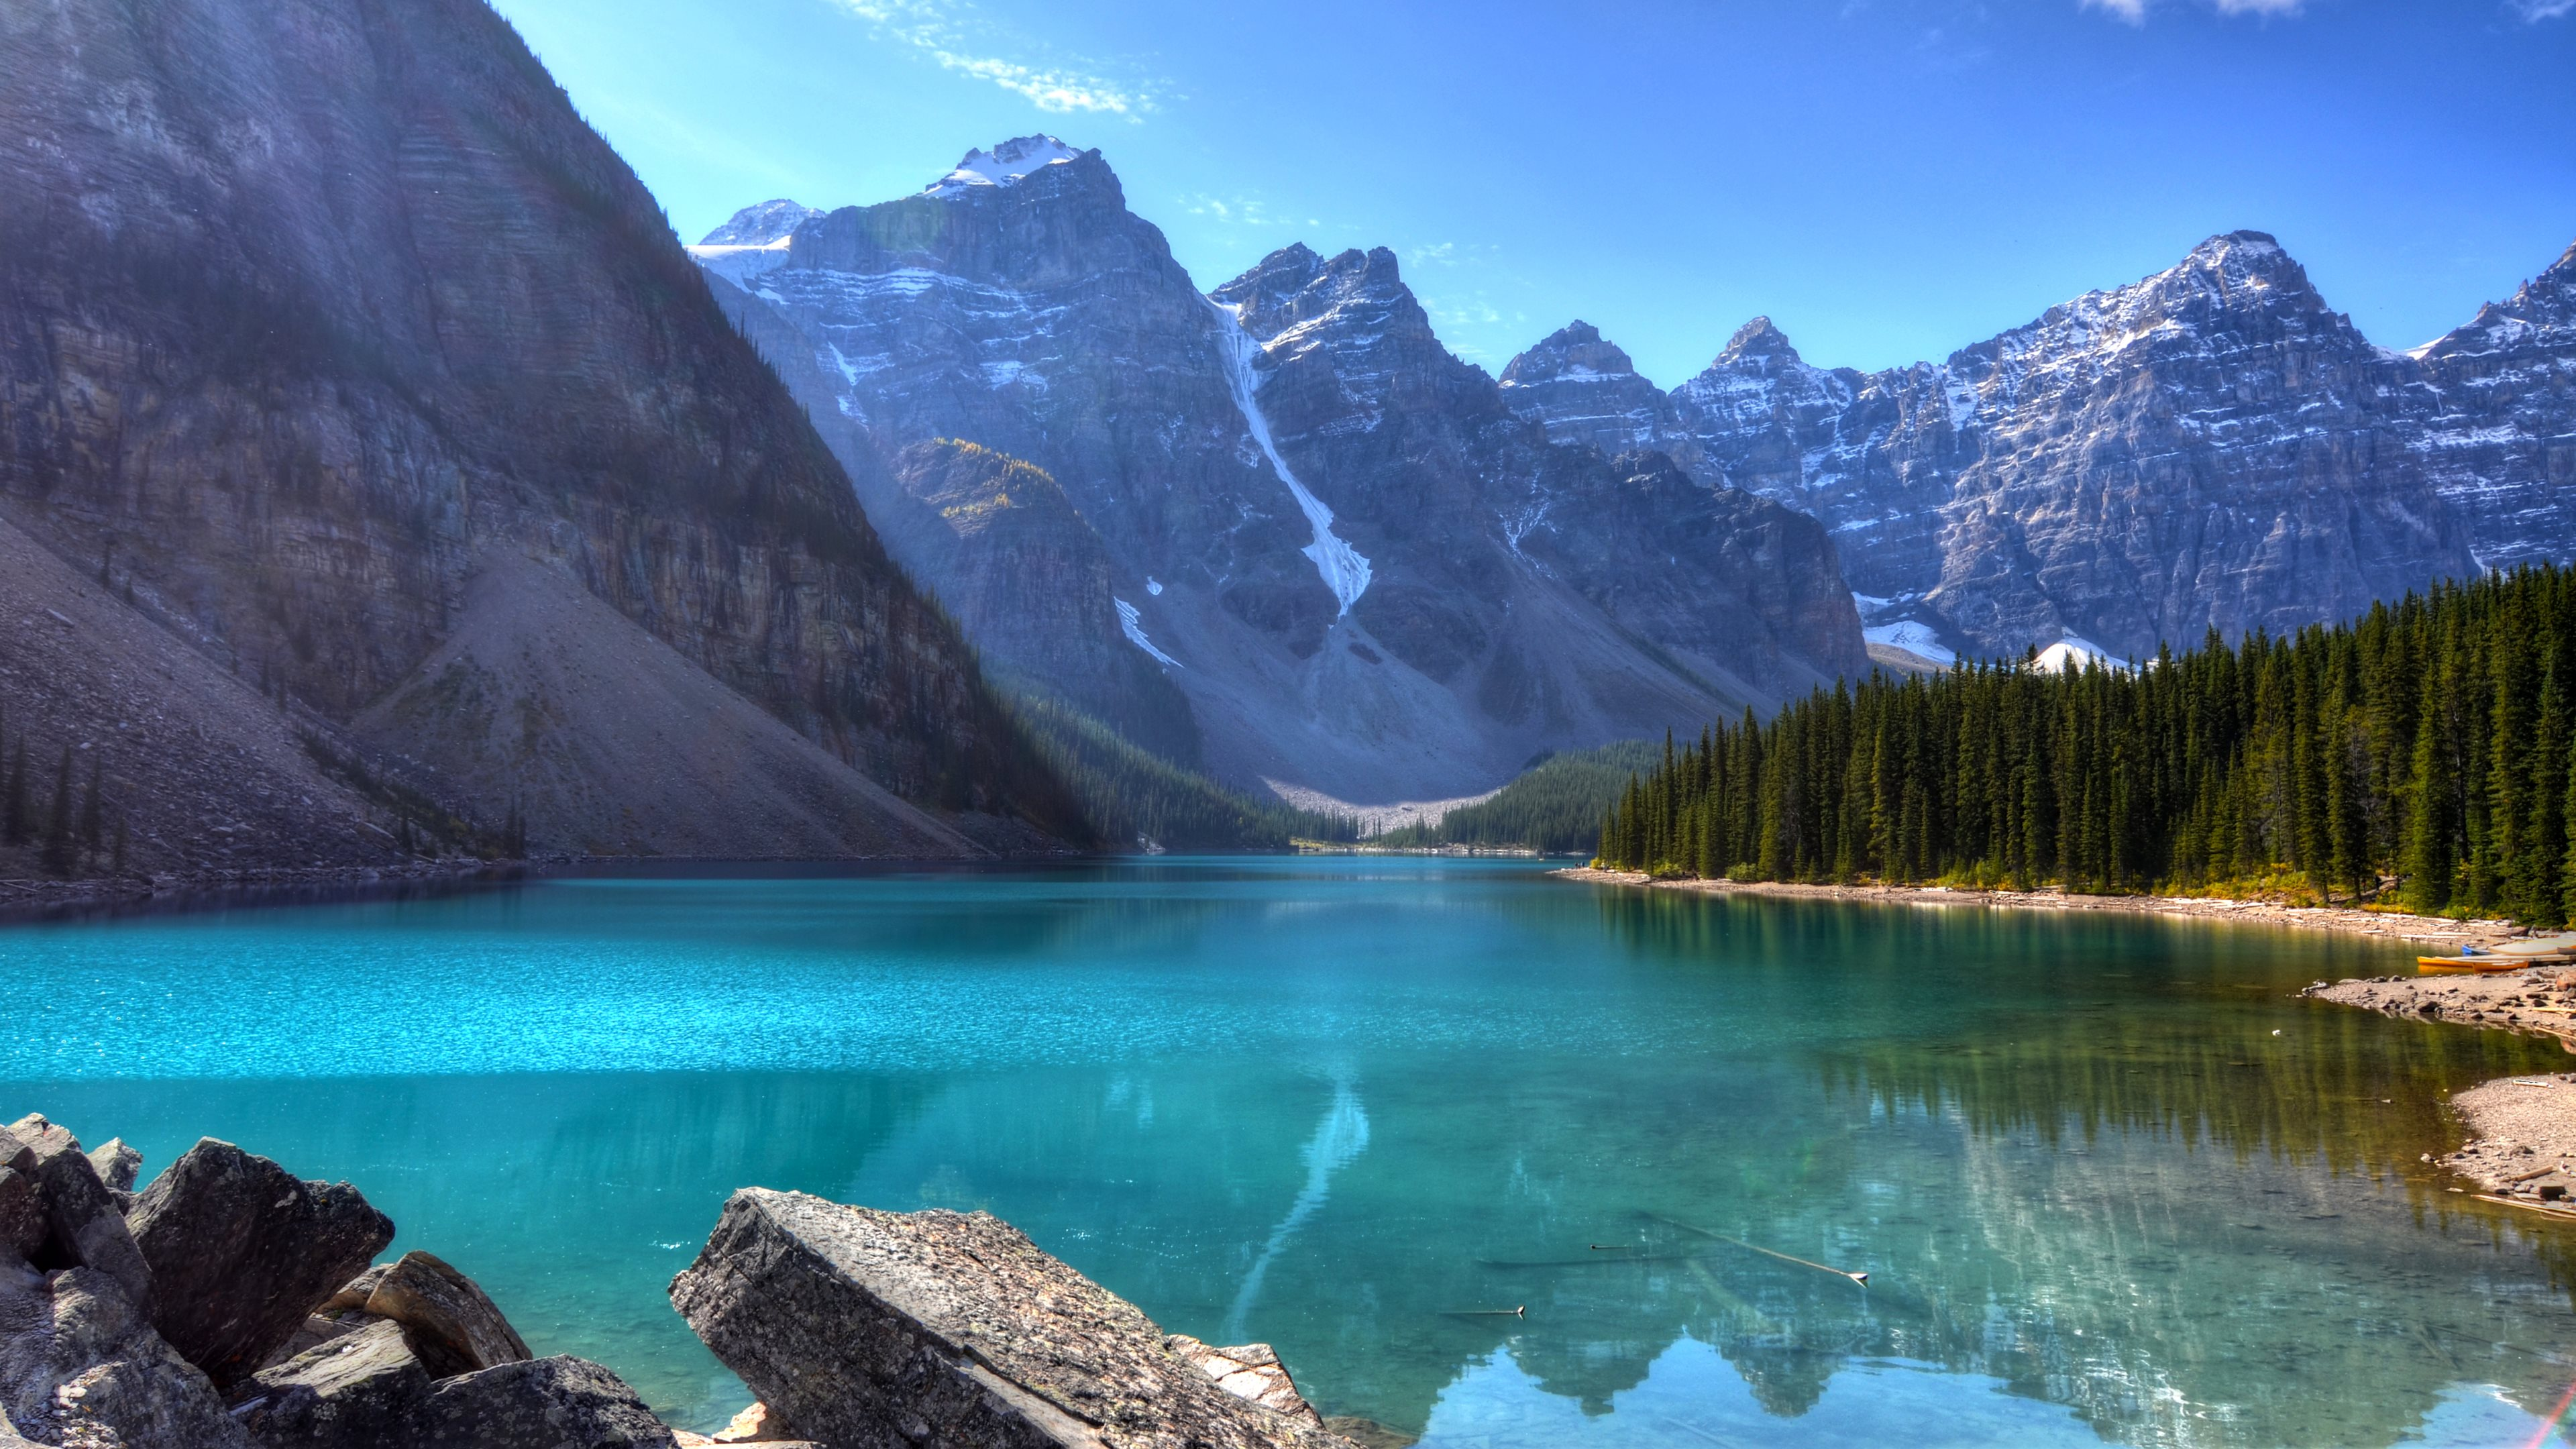 moraine lake 4k ultra hd wallpaper 4878x3225. Black Bedroom Furniture Sets. Home Design Ideas